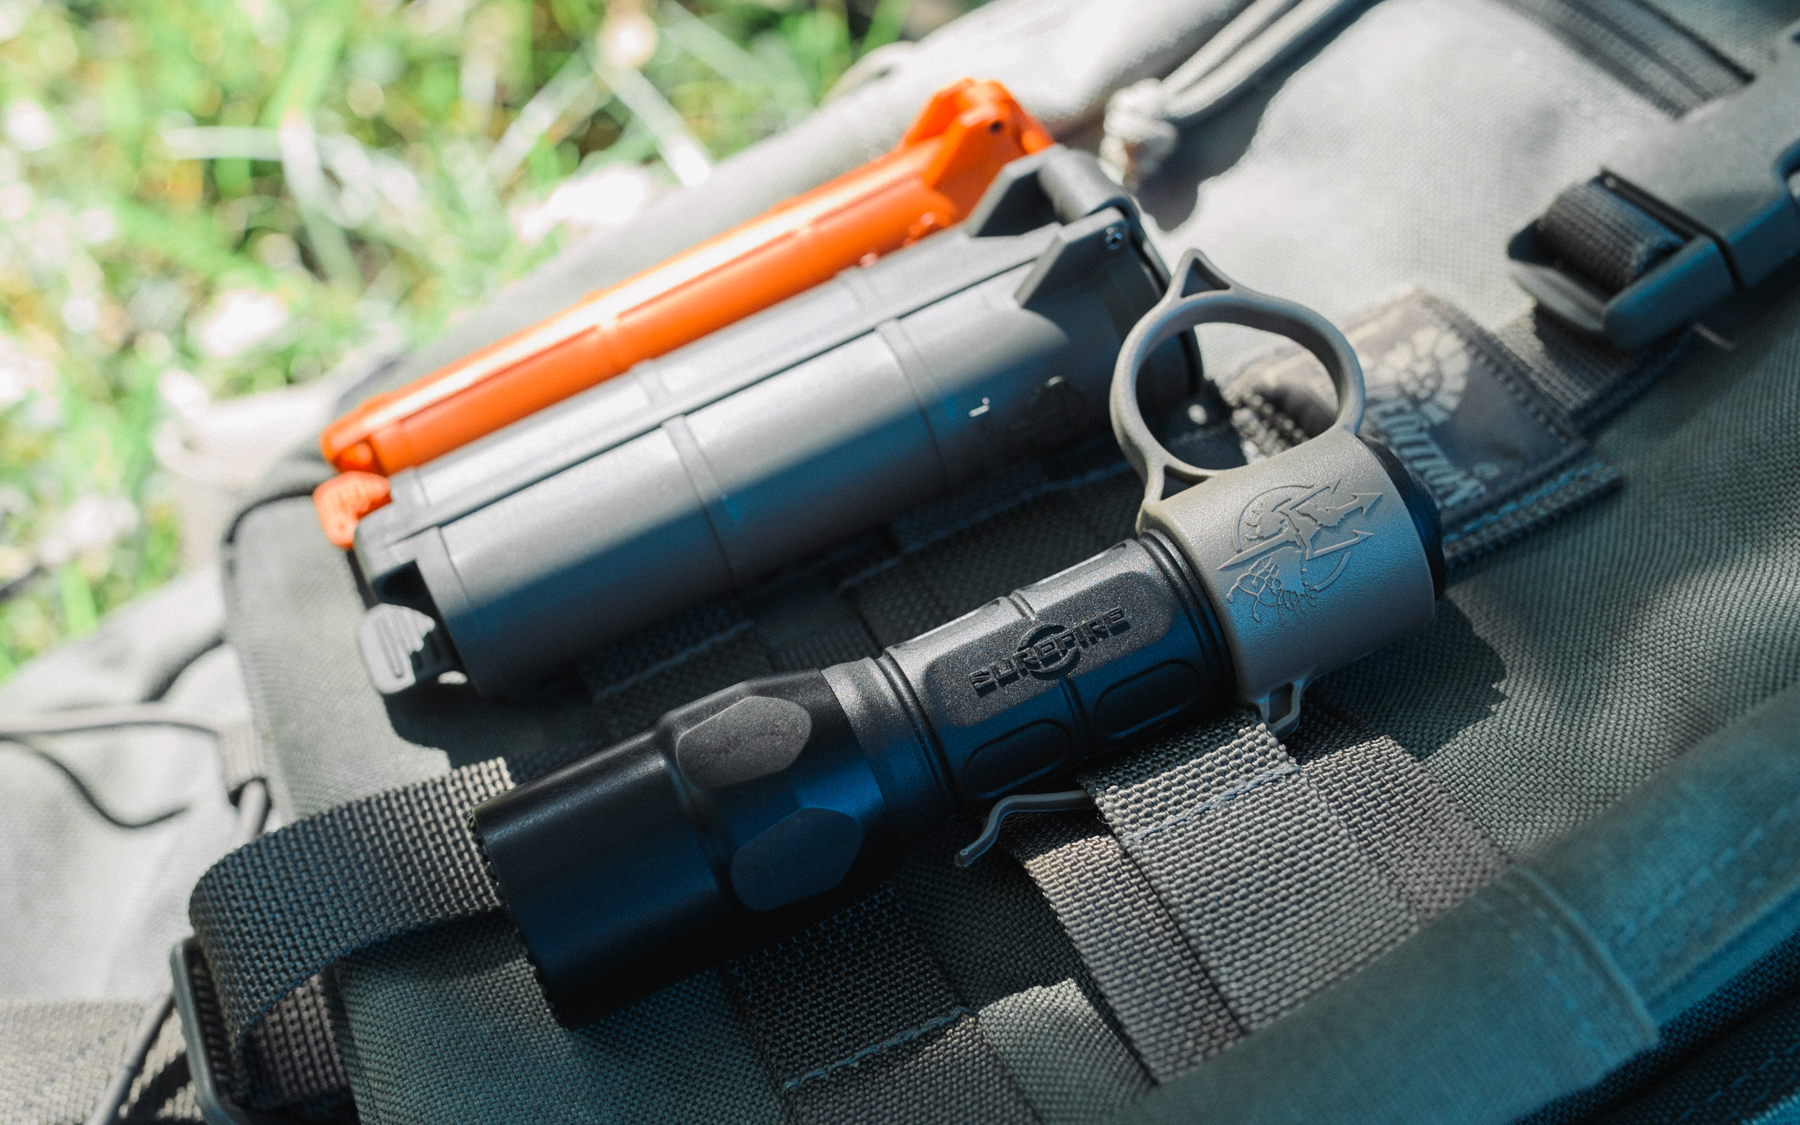 Thyrm CellVault and SwitchBack Tactical Flashlight Accessories